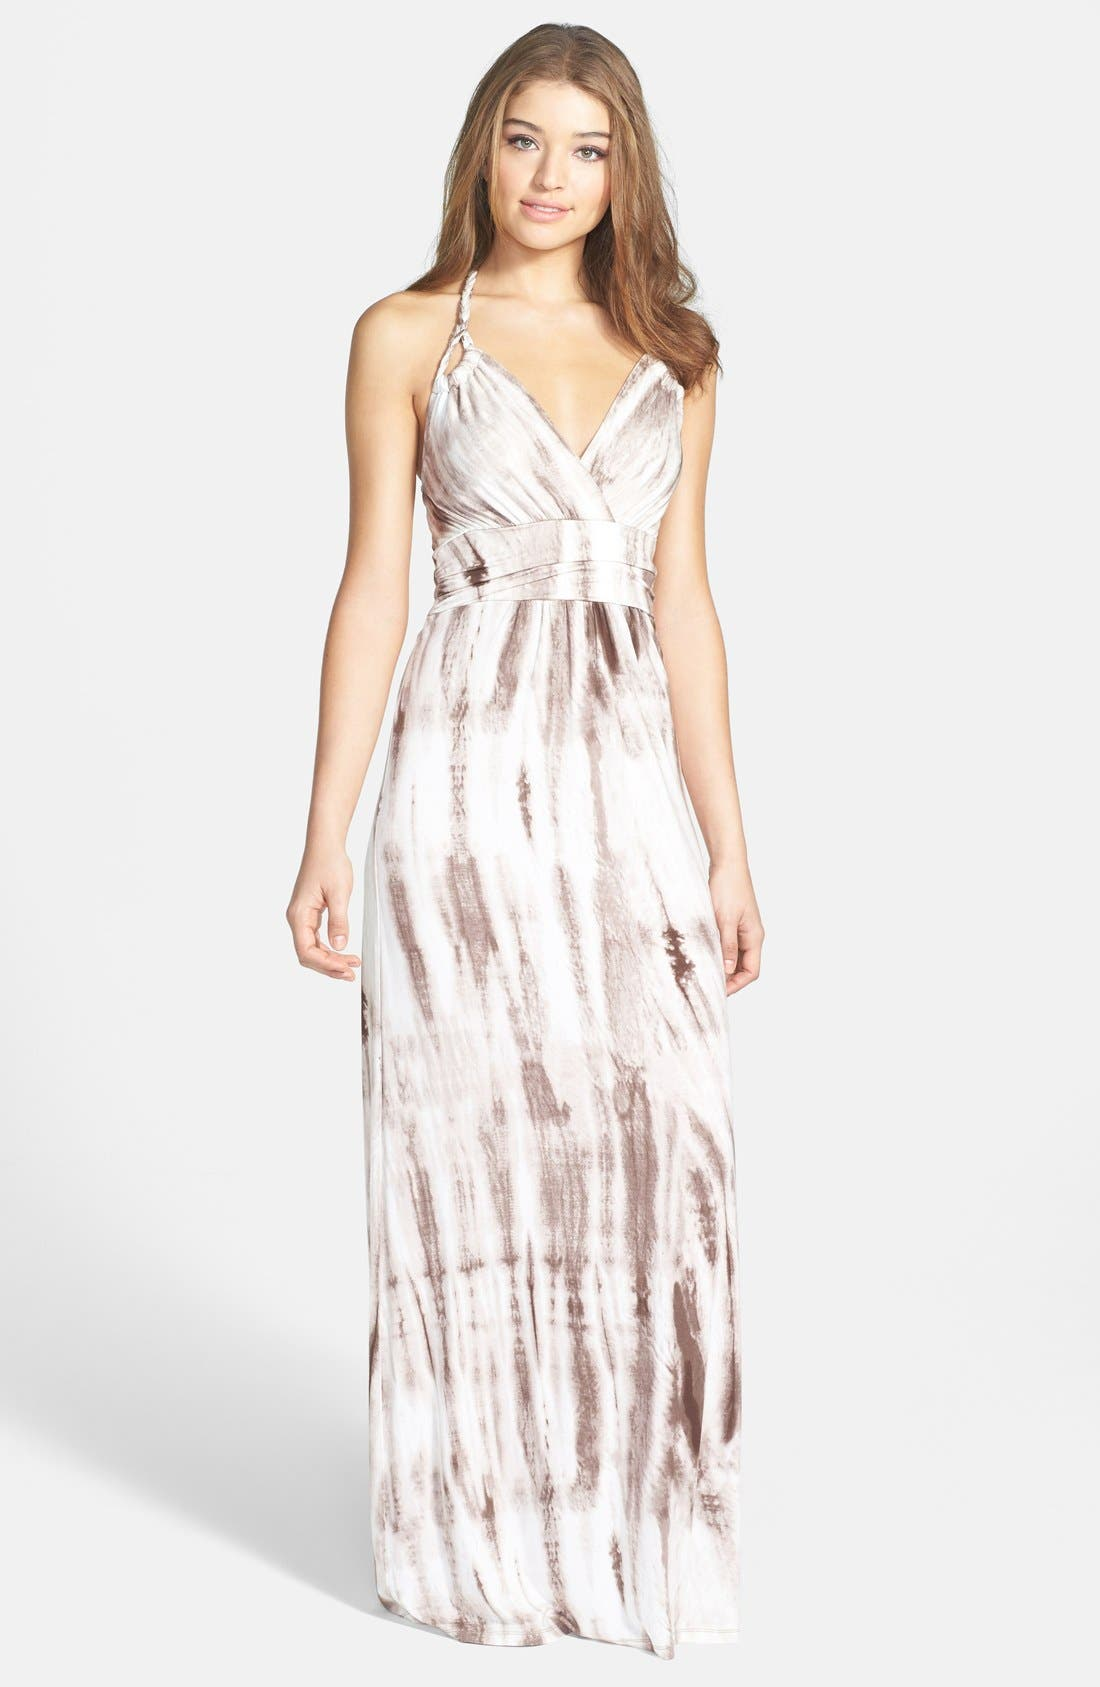 Alternate Image 1 Selected - Felicity & Coco Tie Dye Jersey Halter Maxi Dress (Nordstrom Exclusive)